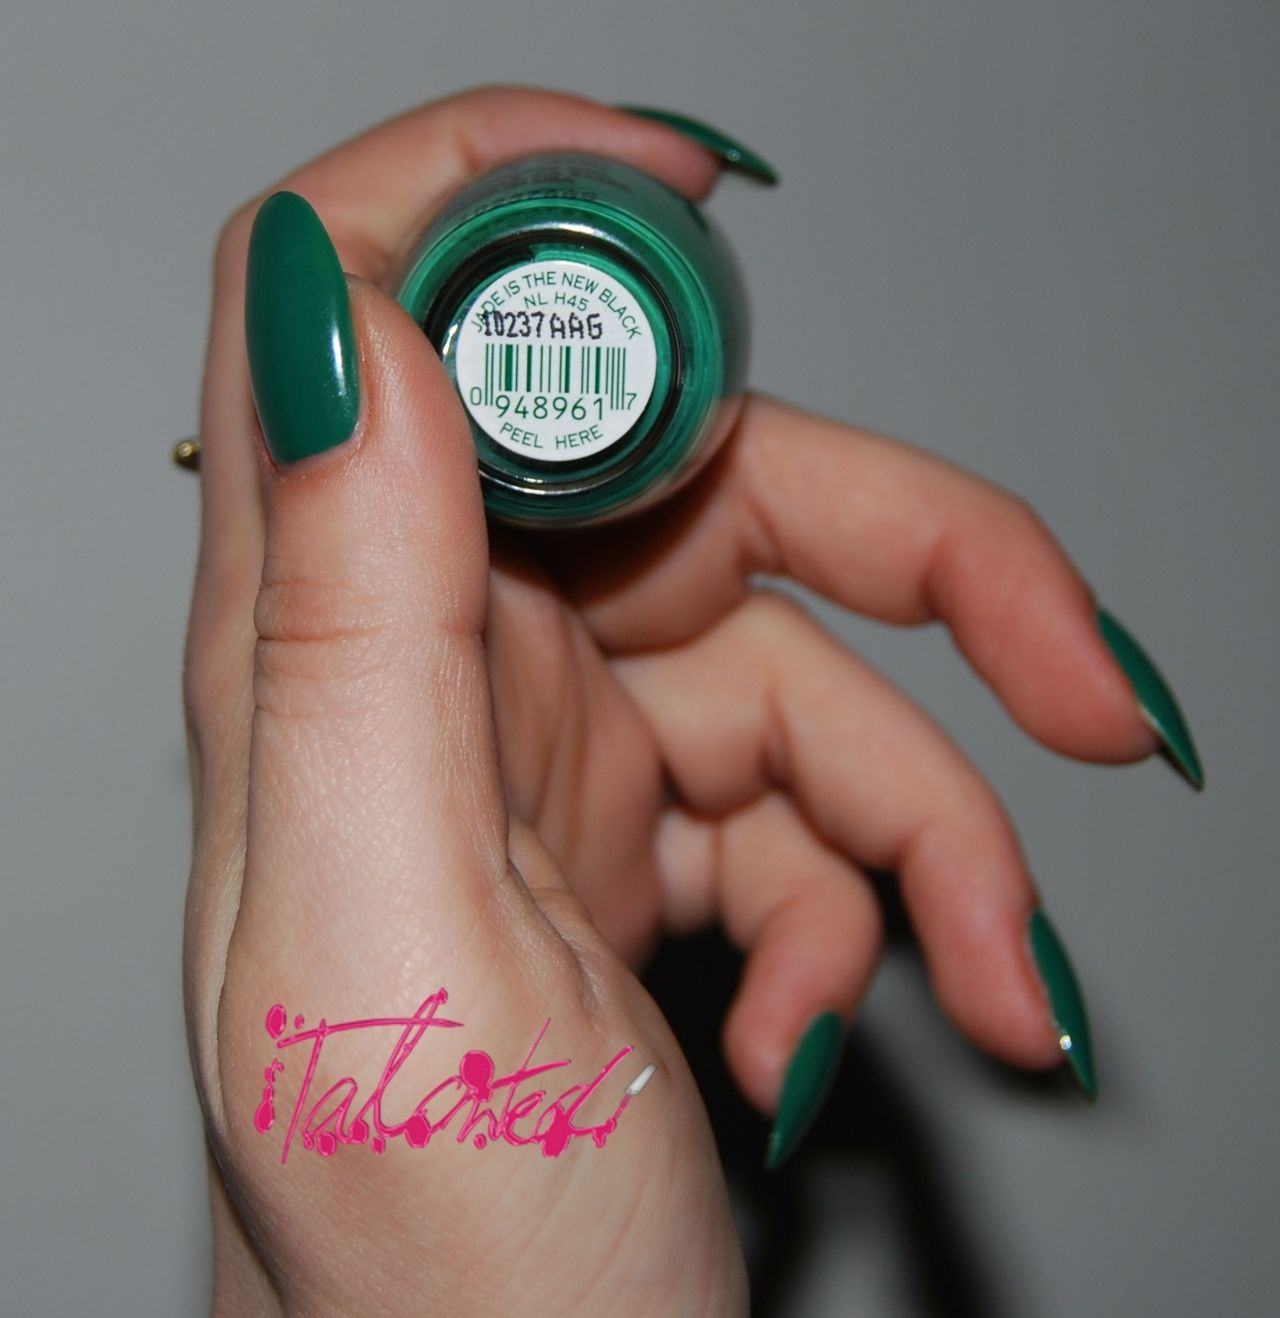 Swatch - OPI 'Jade Is The New Black' nail varnish http://talontedlex.co.uk/post/21792311476/swatch-opi-jade-is-the-new-black-this-is-one